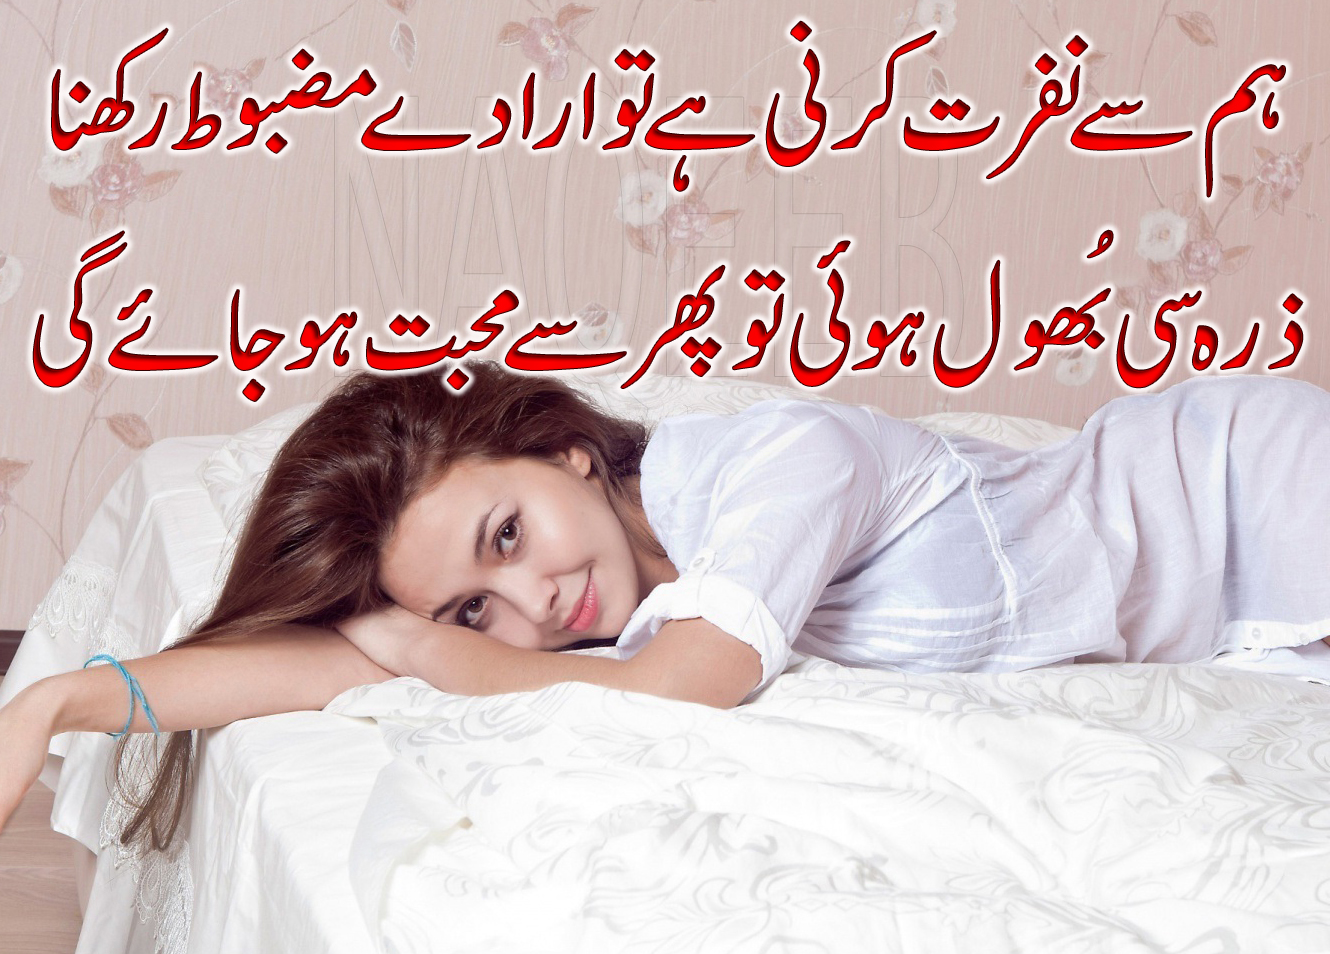 HD Urdu Poetry